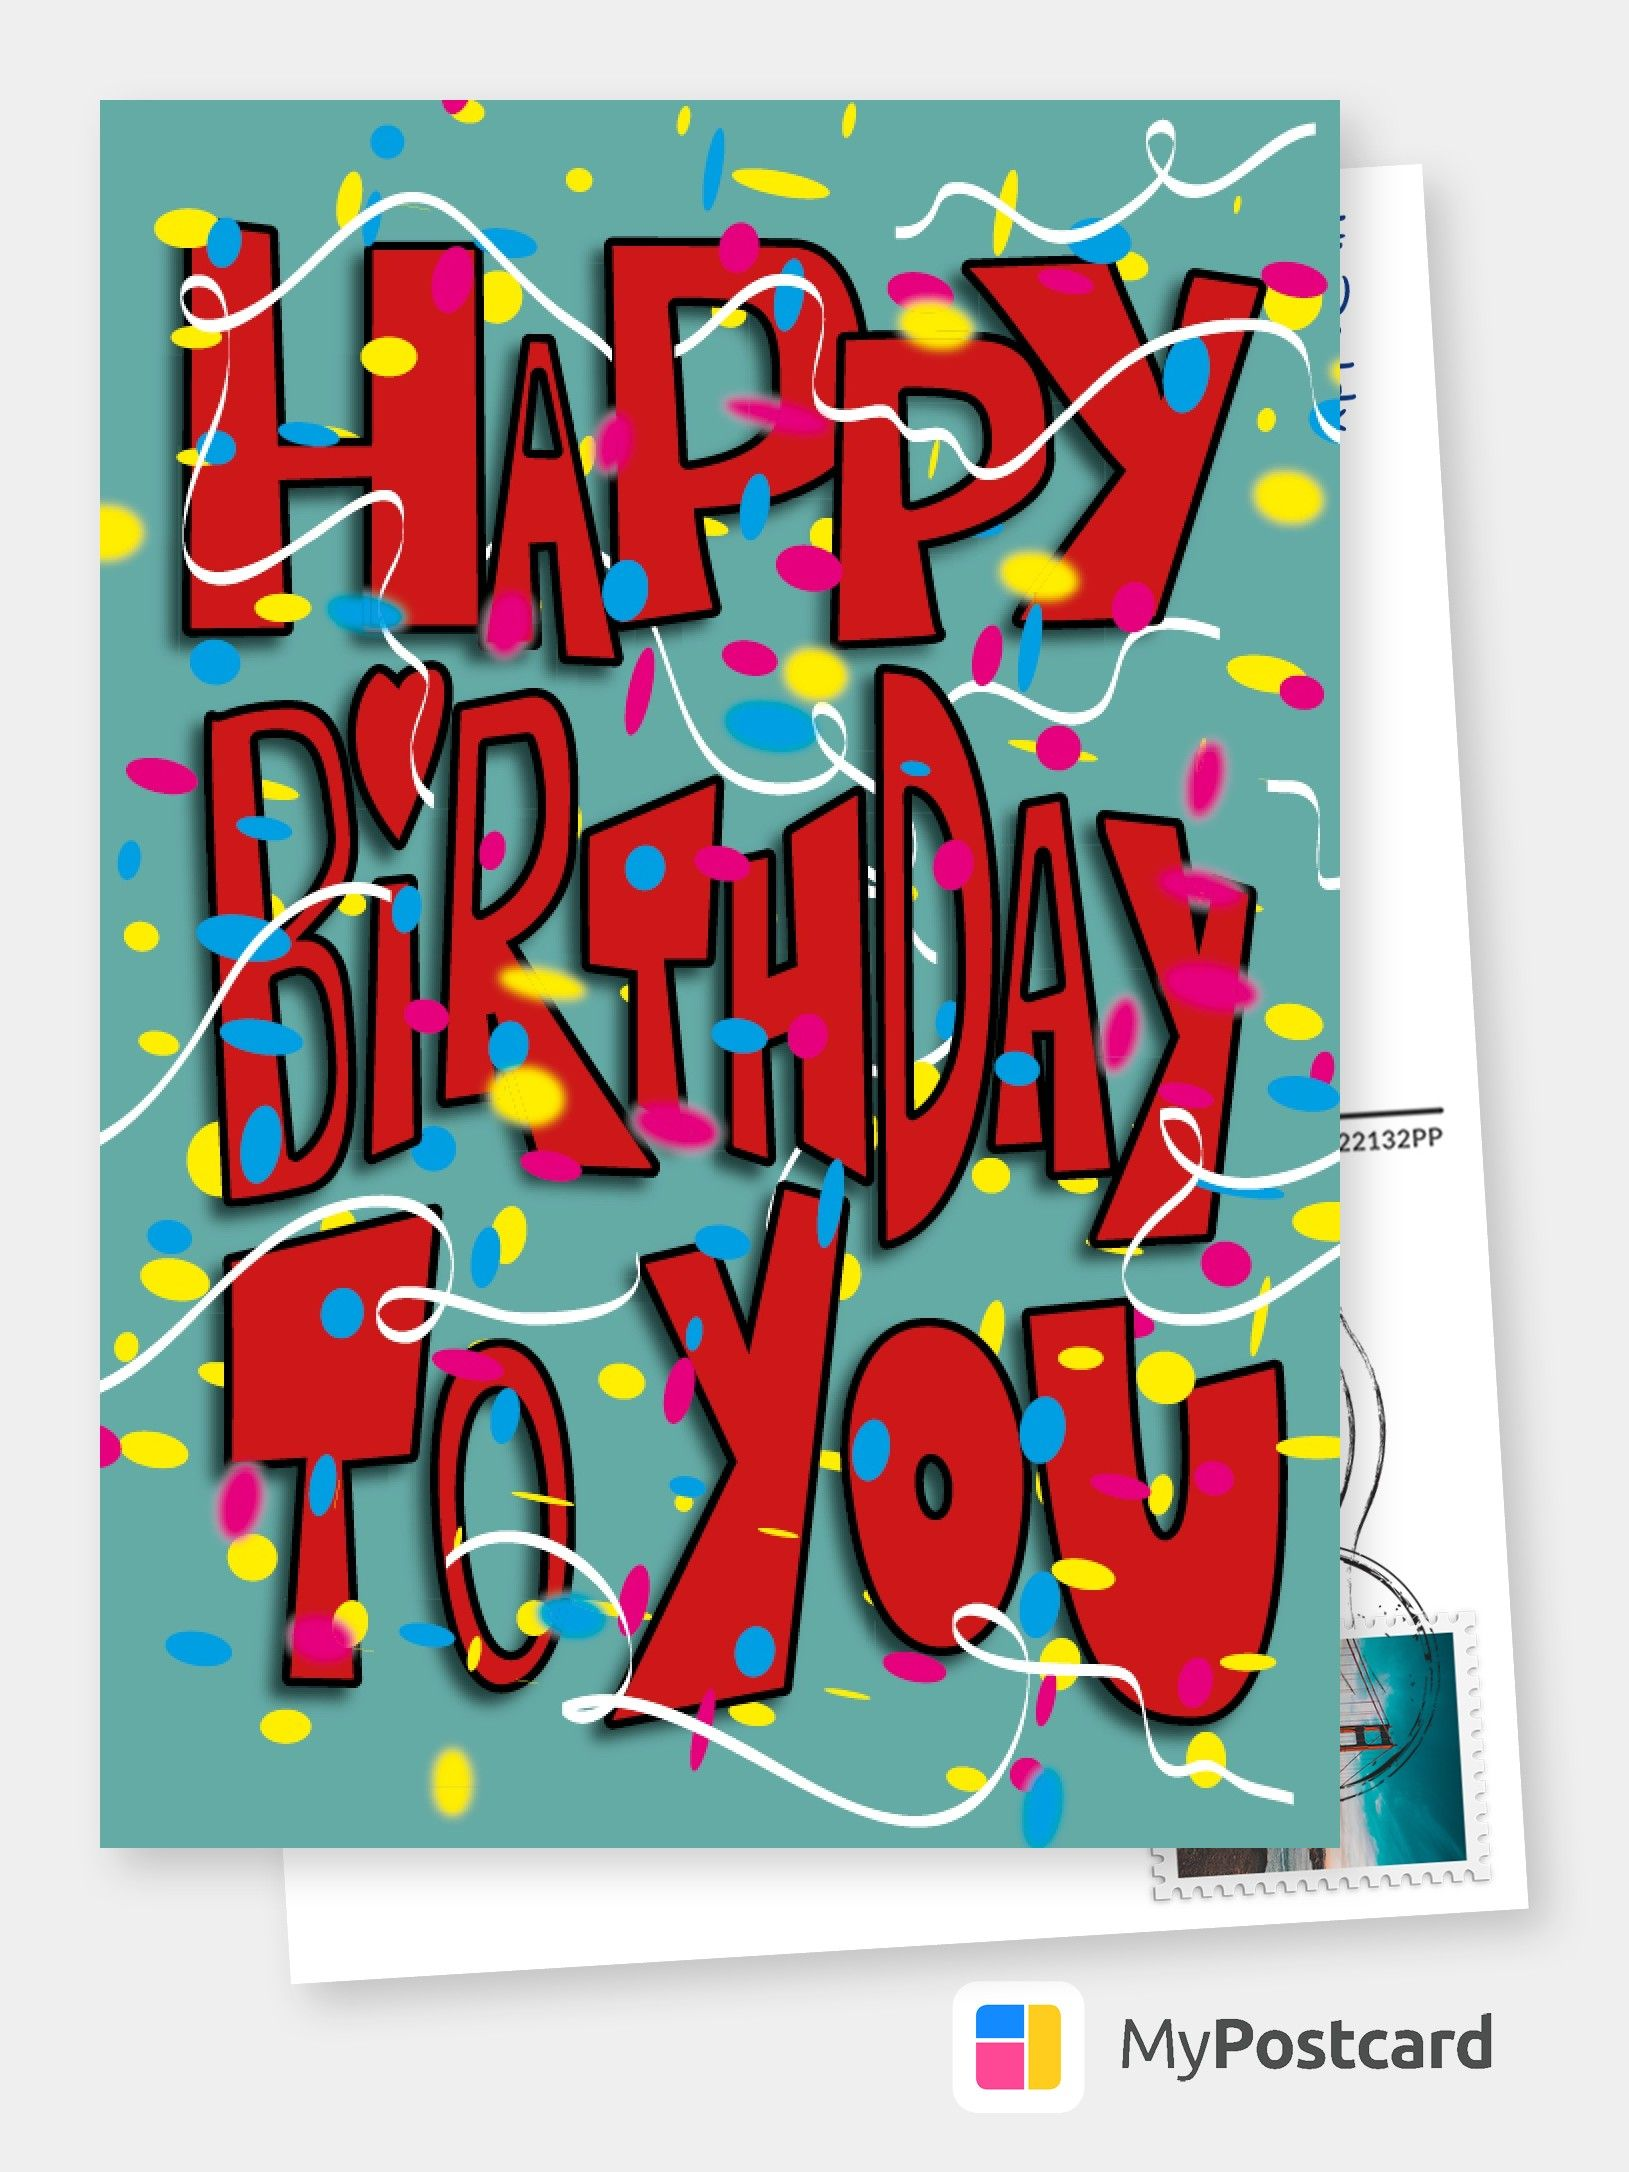 Personalized Birthday Cards Online Printed Mailede For You International Free Shipping Postage Delivery Photo Cards Postcards Greeting Cards Birthday Card Online Birthday Wishes Greeting Cards Happy Birthday Cards Online